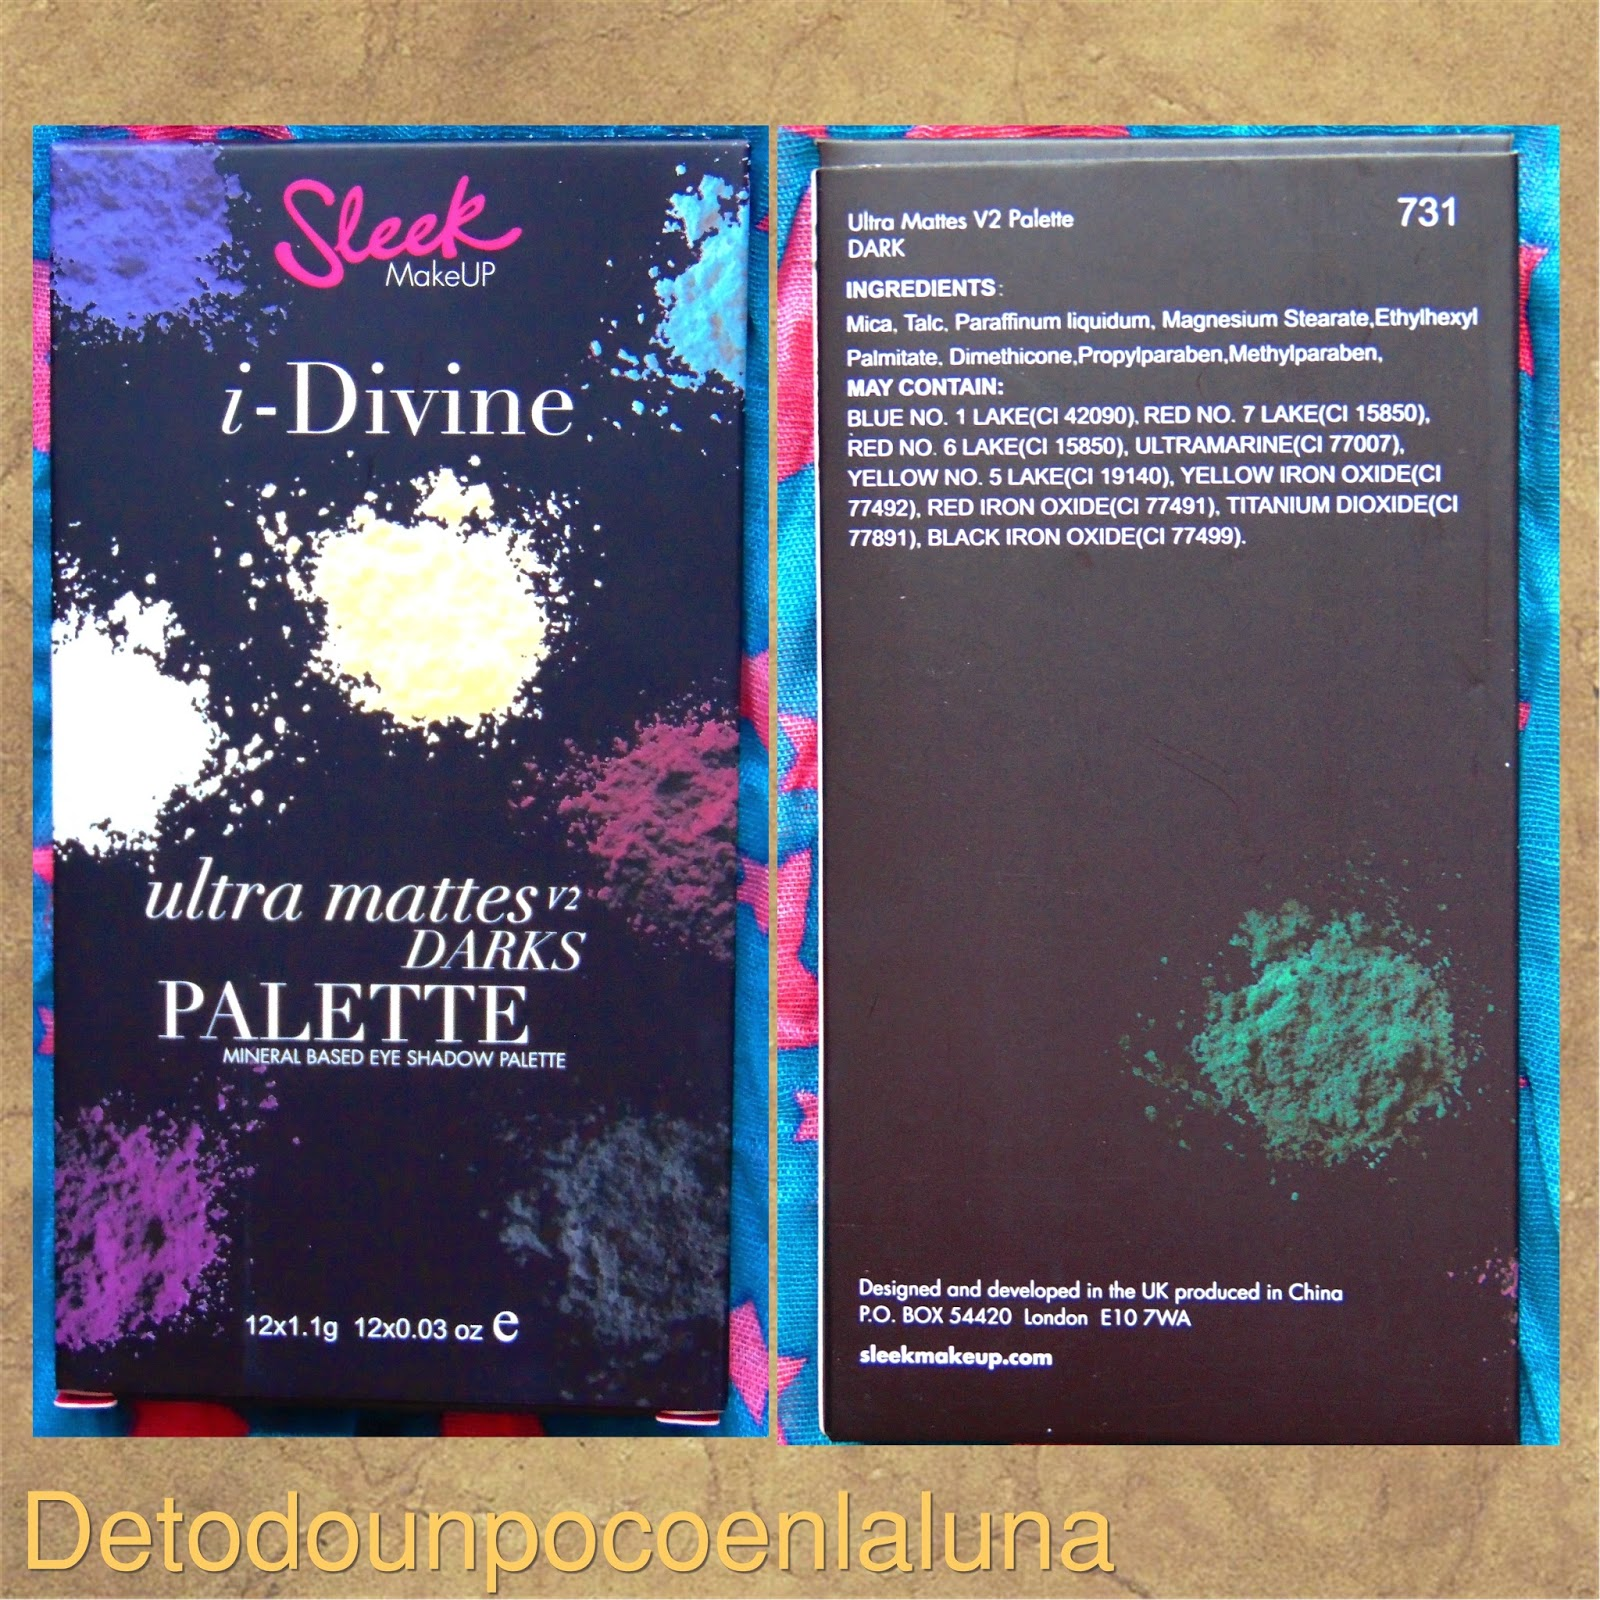 paleta ultra mattes darks de sleek